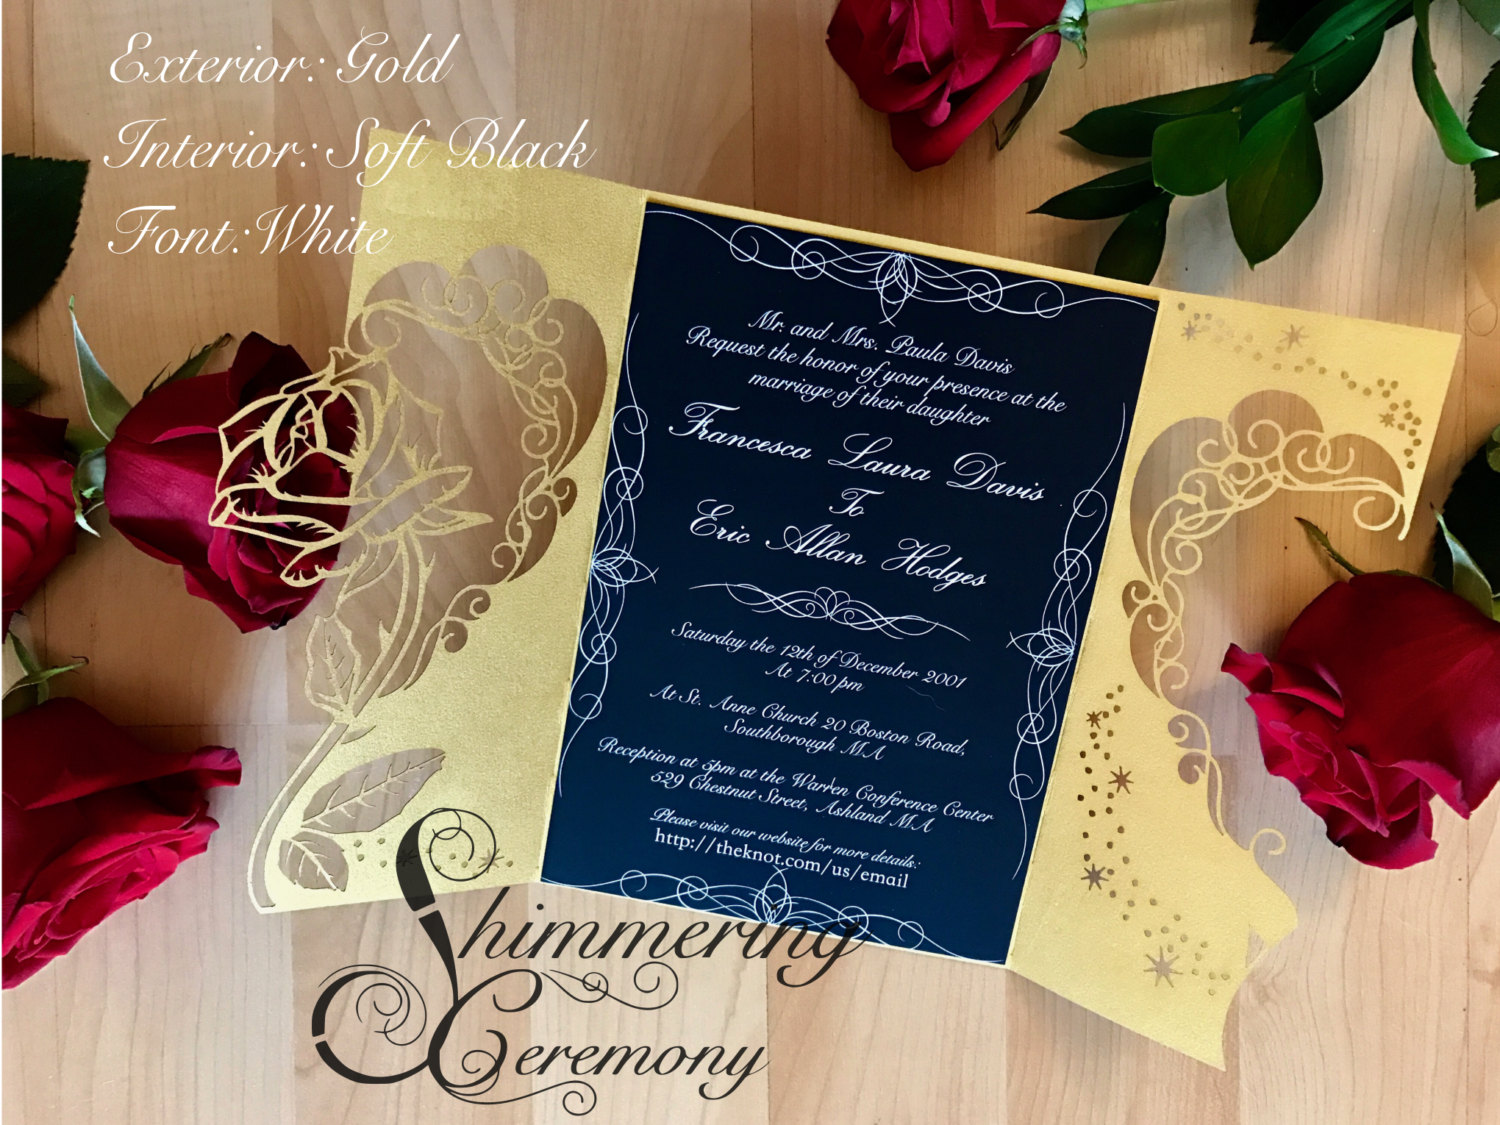 Merveilleux Beauty And The Beast Inspired Wedding Invitation Laser Rose And Magic Cut  Gatefold Princess Party Unique